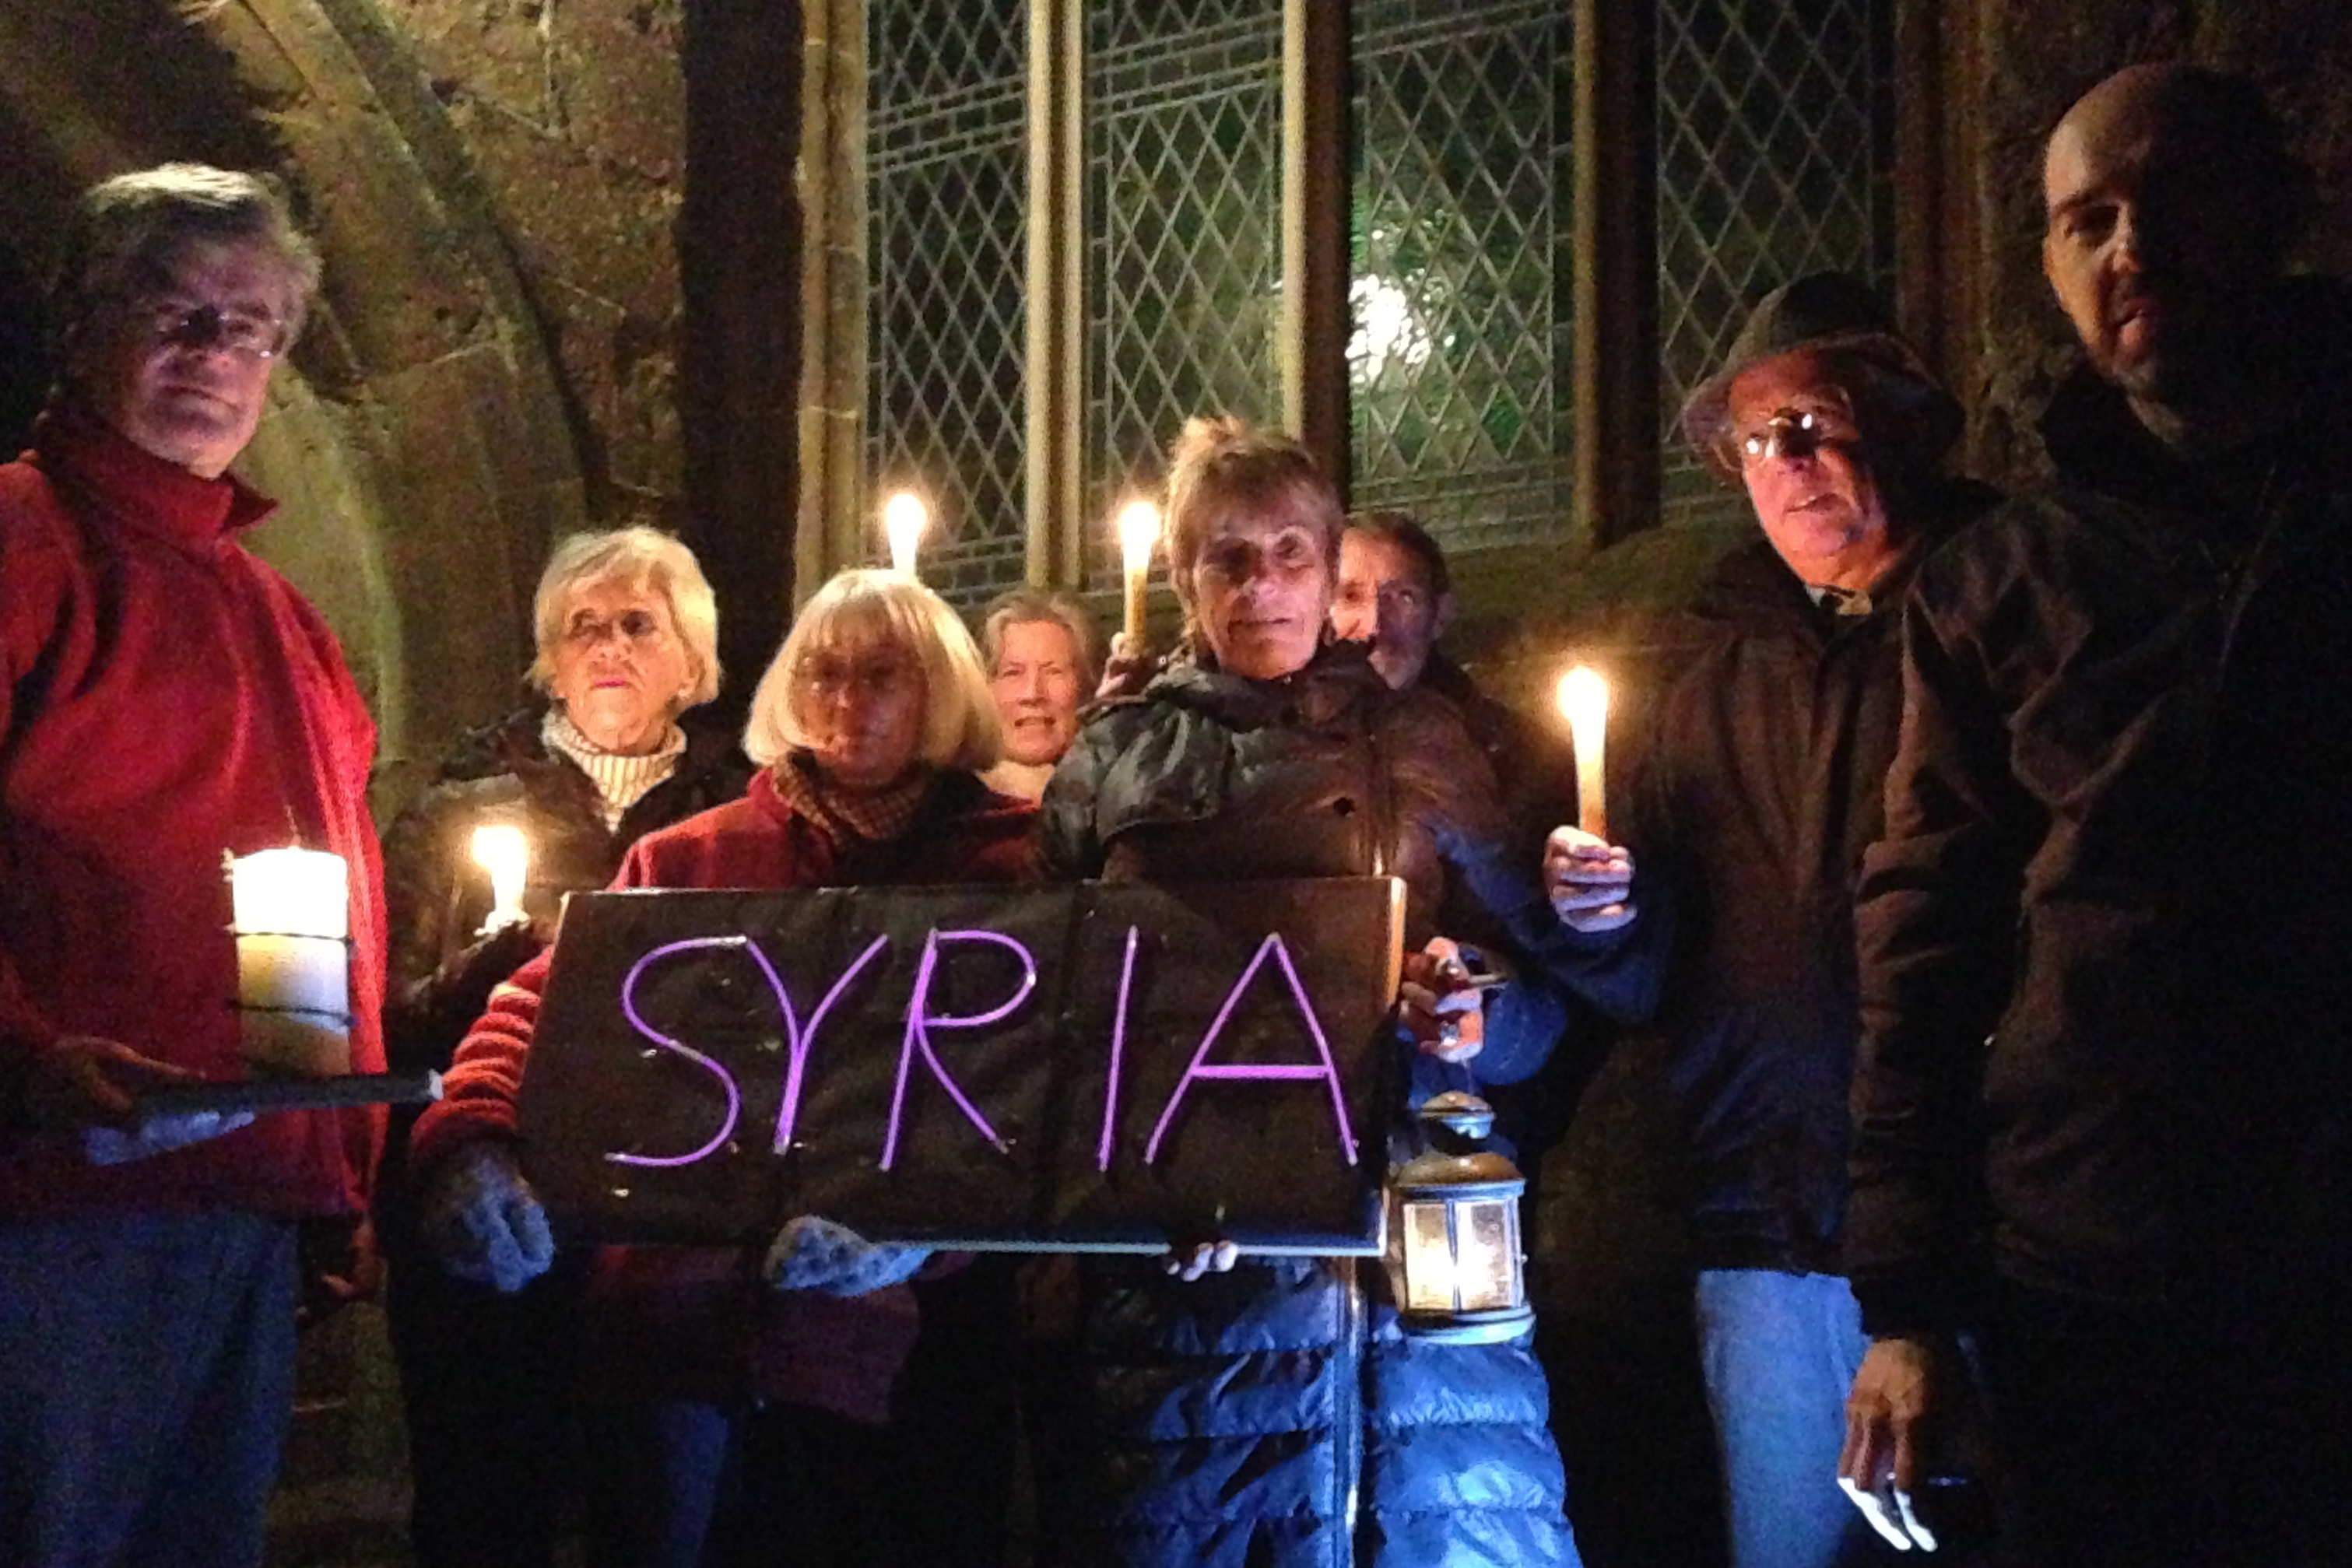 Candlelight vigil for Syria